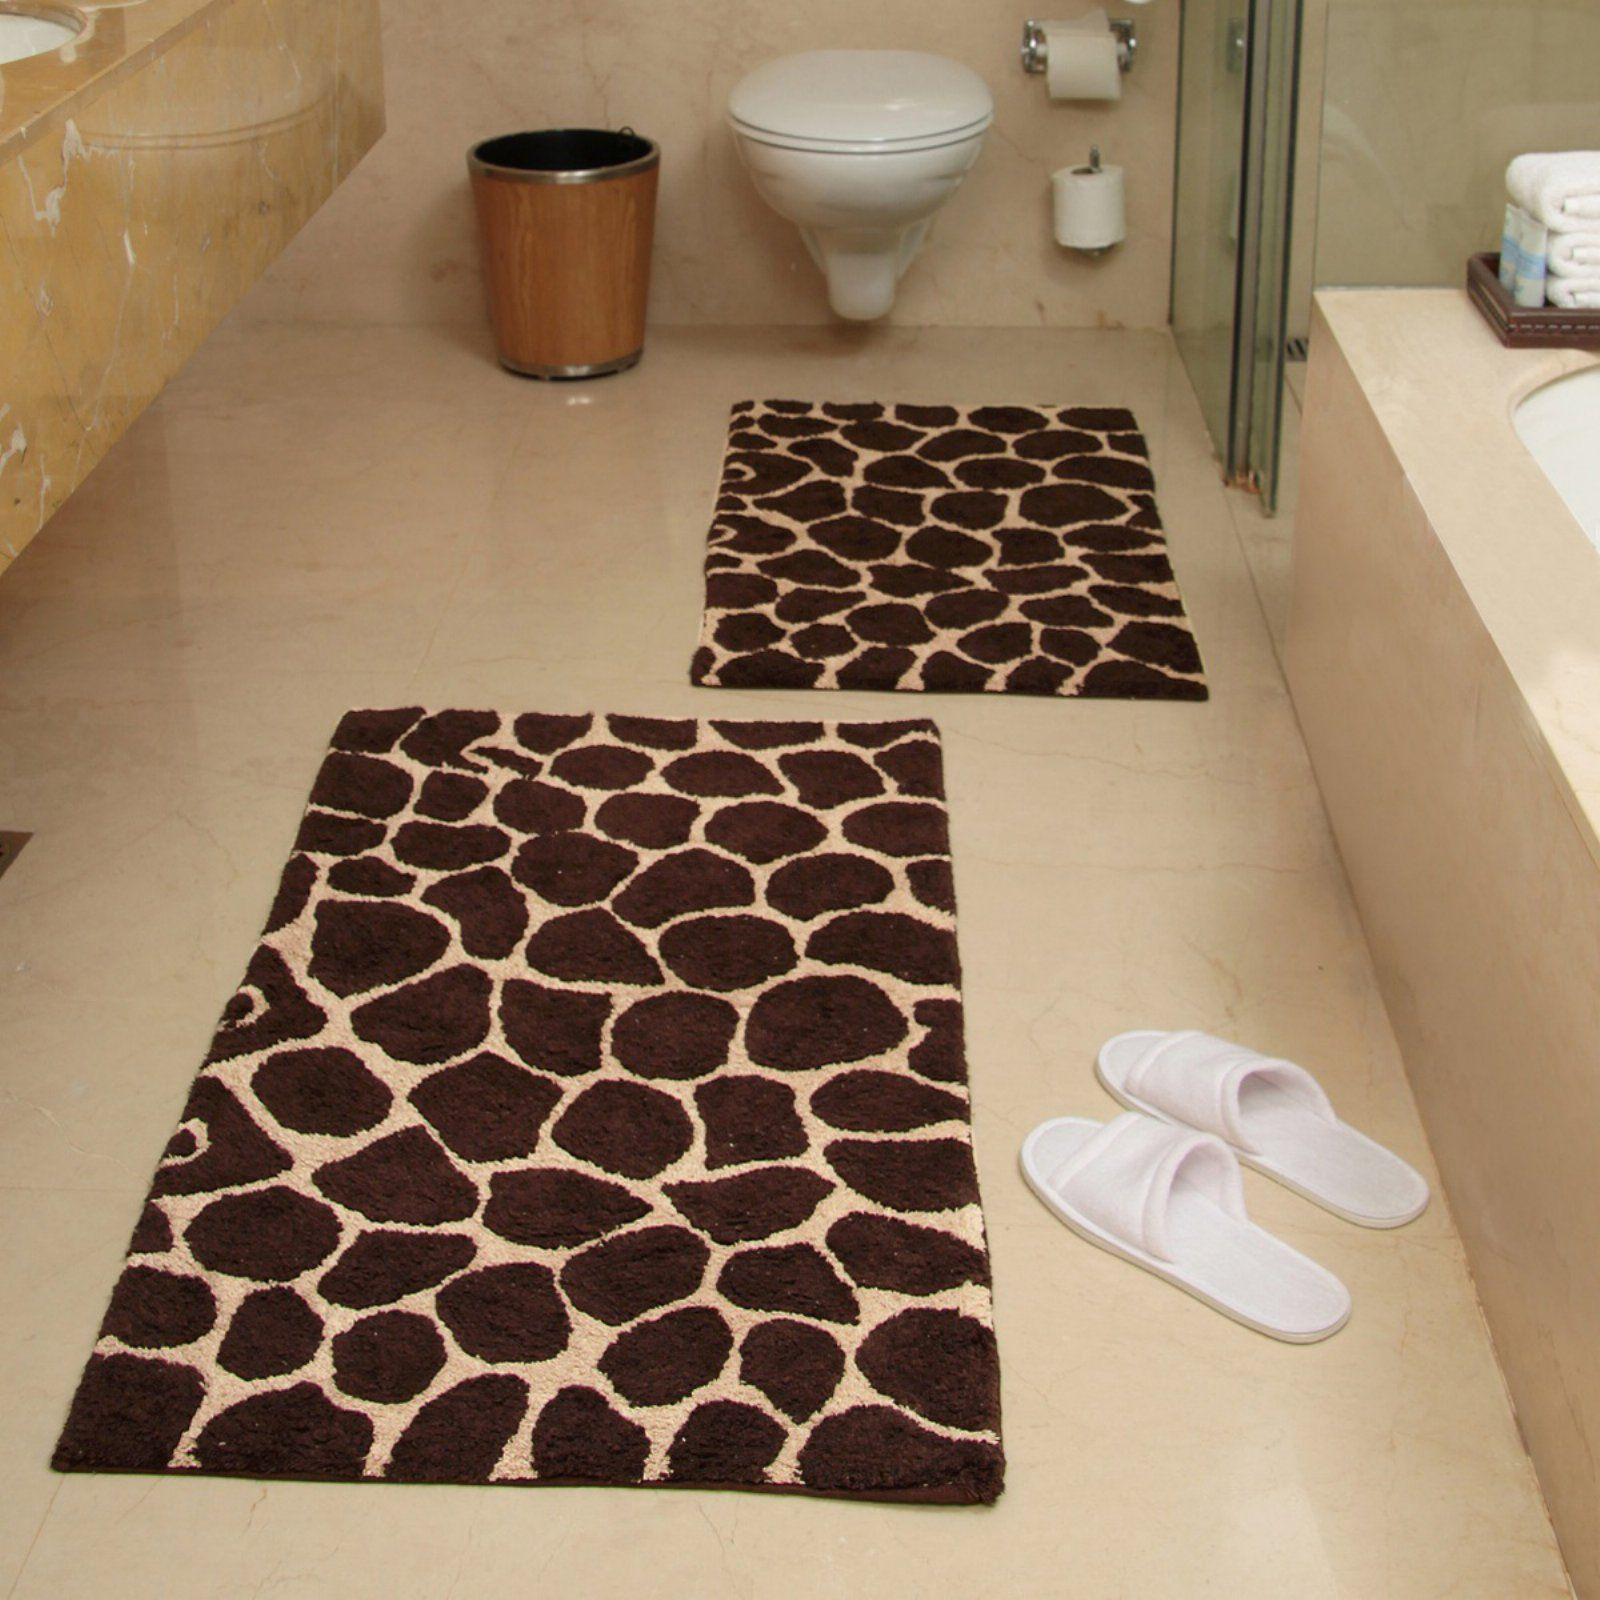 2 Piece Giraffe Bath Rug Set Chocolate And Beige With Images